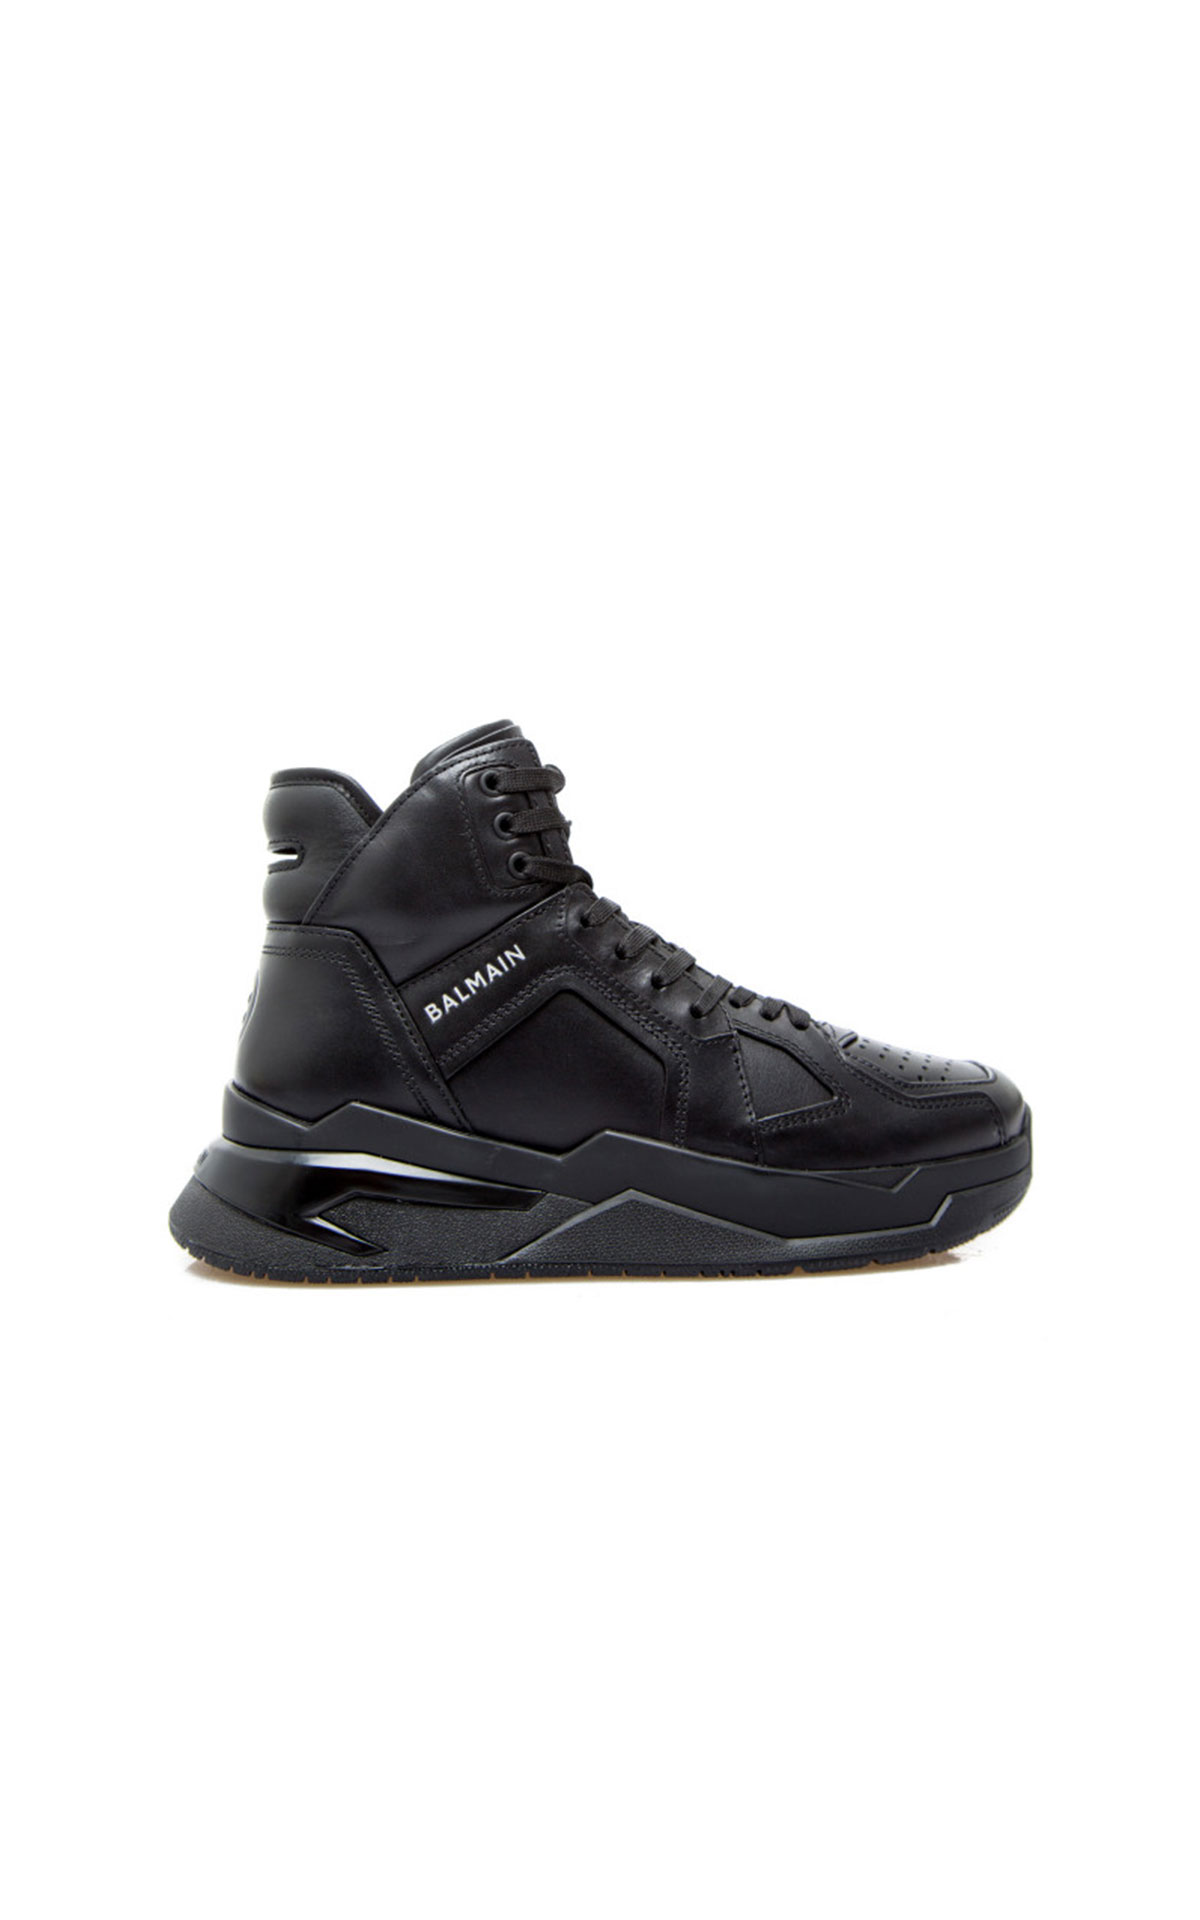 Balmain B-Ball black sneaker from Bicester Village